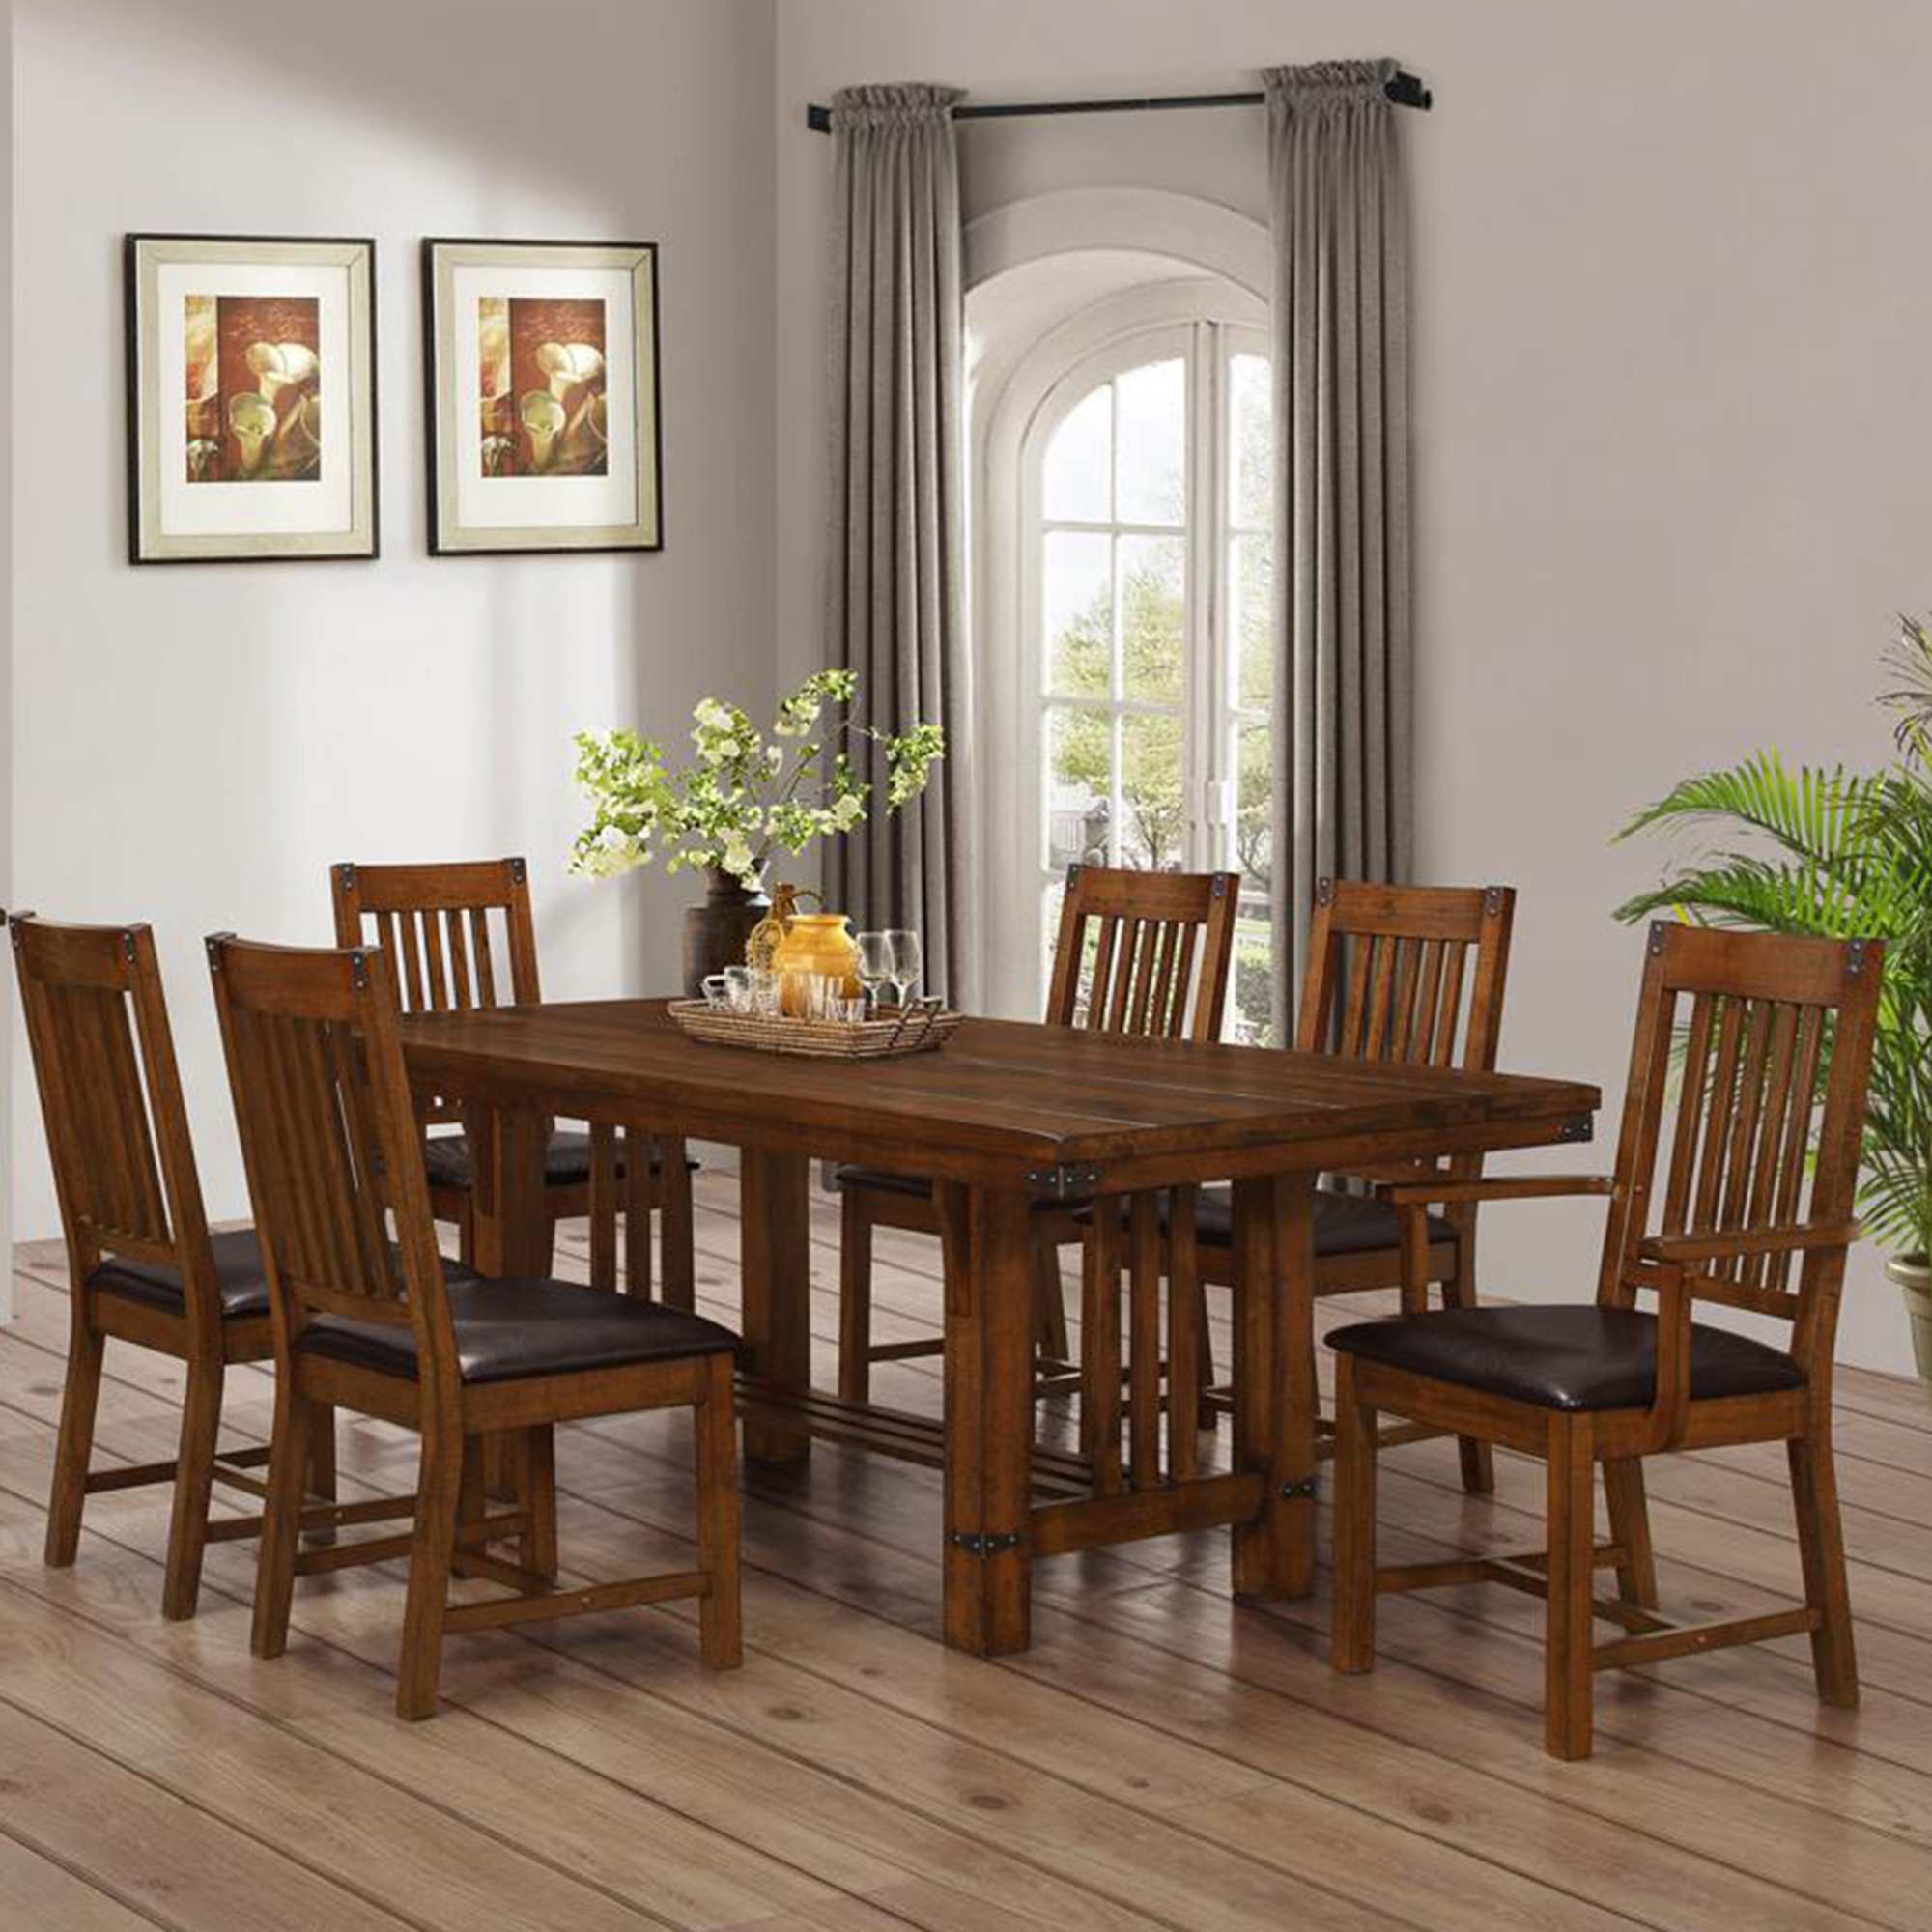 New Craftsman Table and Stool Set